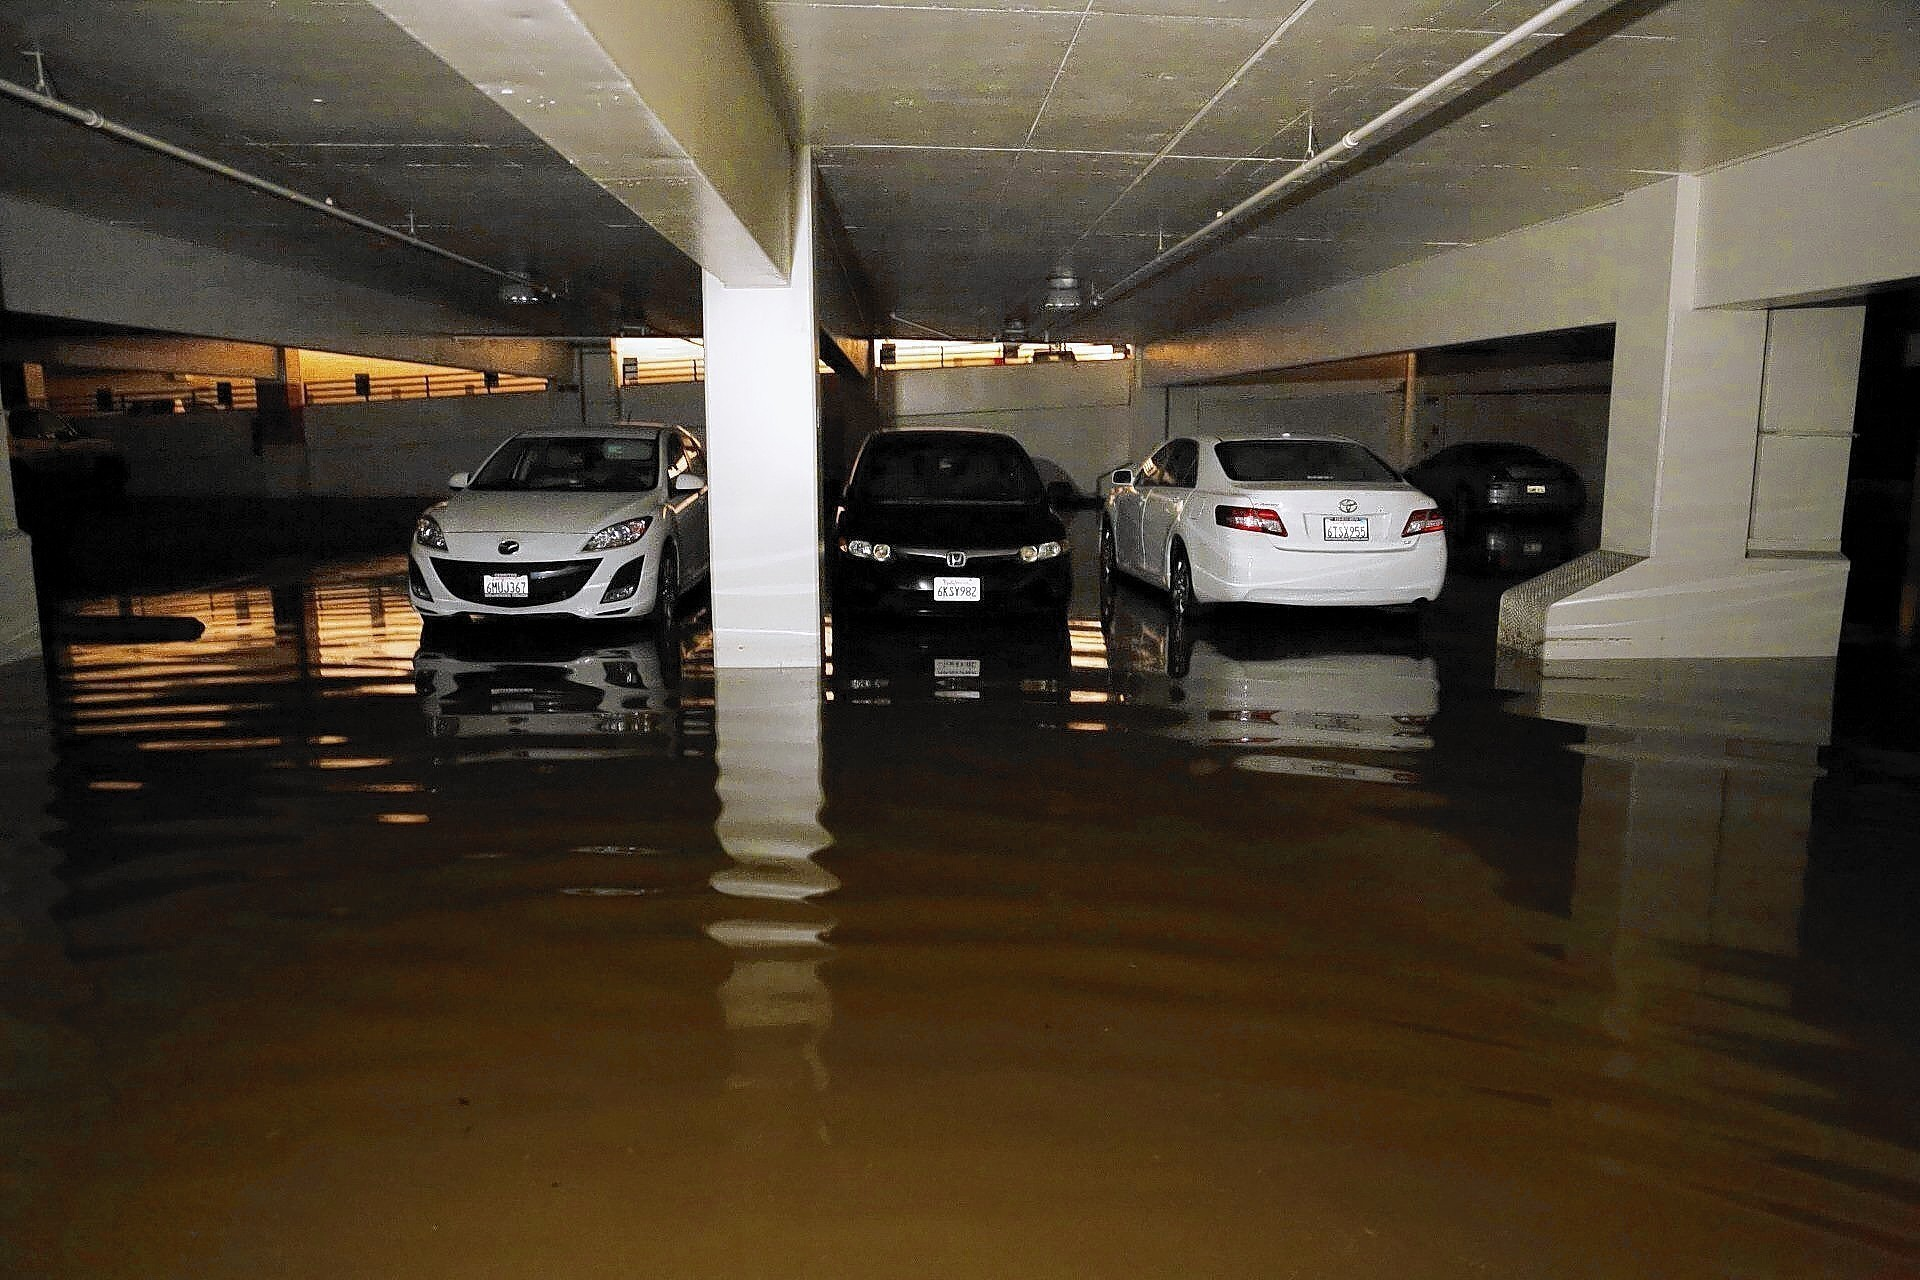 UCLA flood from water line rupture is red flag for L.A. infrastructure